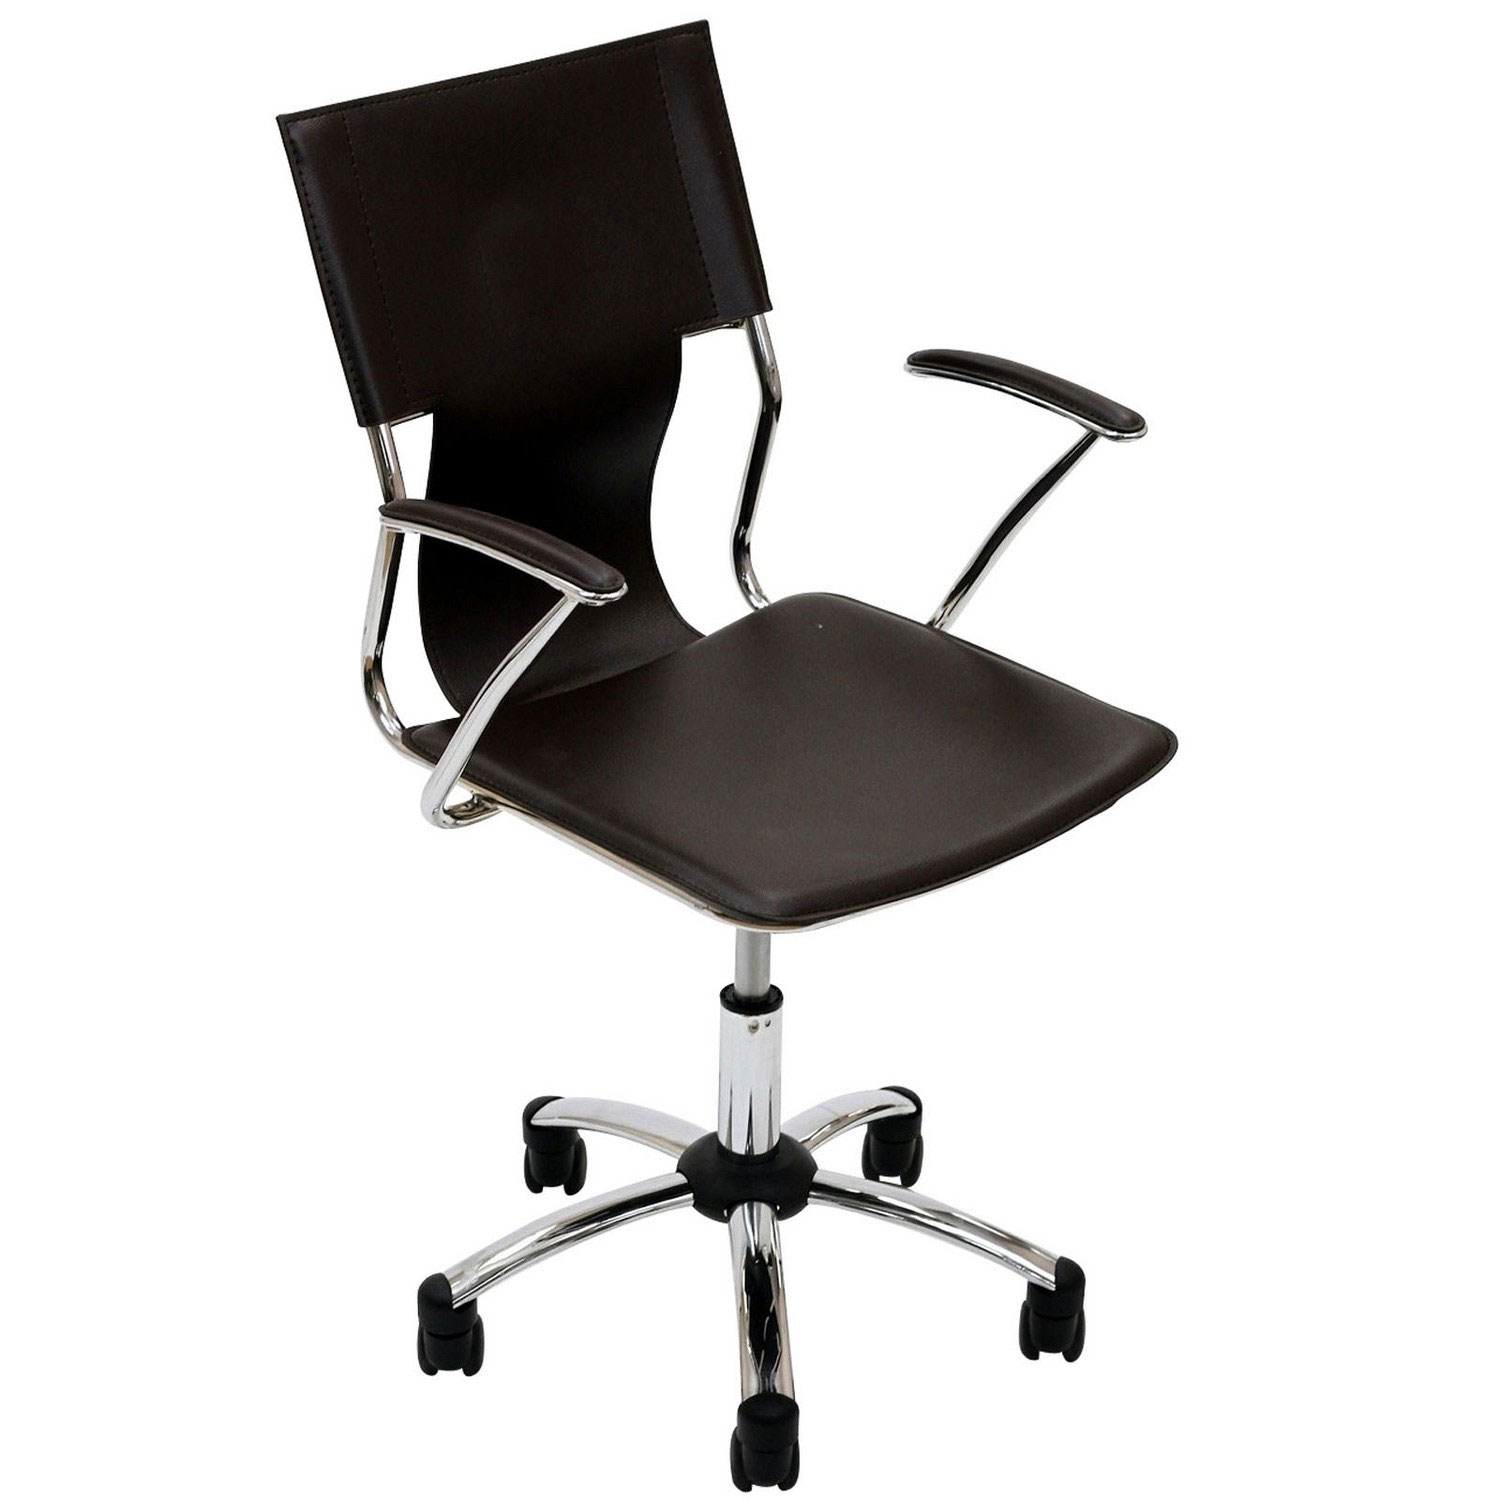 modway office chair white wooden folding chairs studio brown mw eei 198 brn at